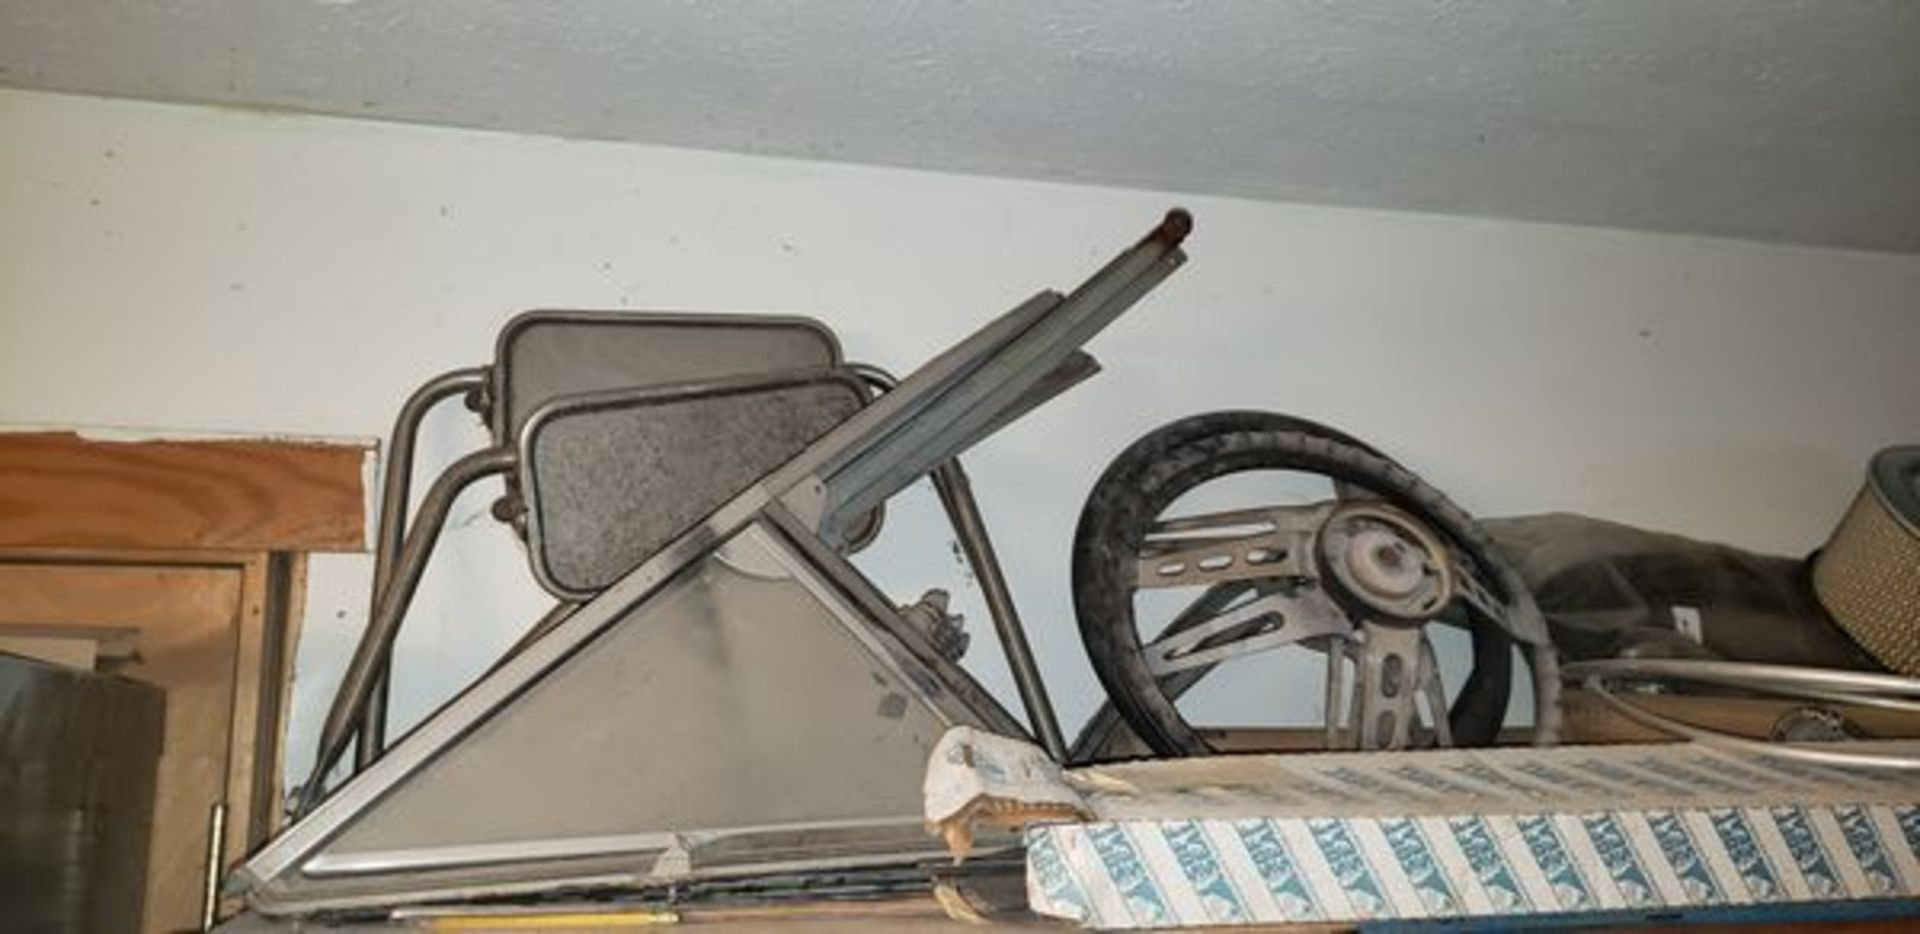 LOT OF ASSORTED CAR PARTS ON 3 SHELVES AND FLOOR - Image 2 of 12